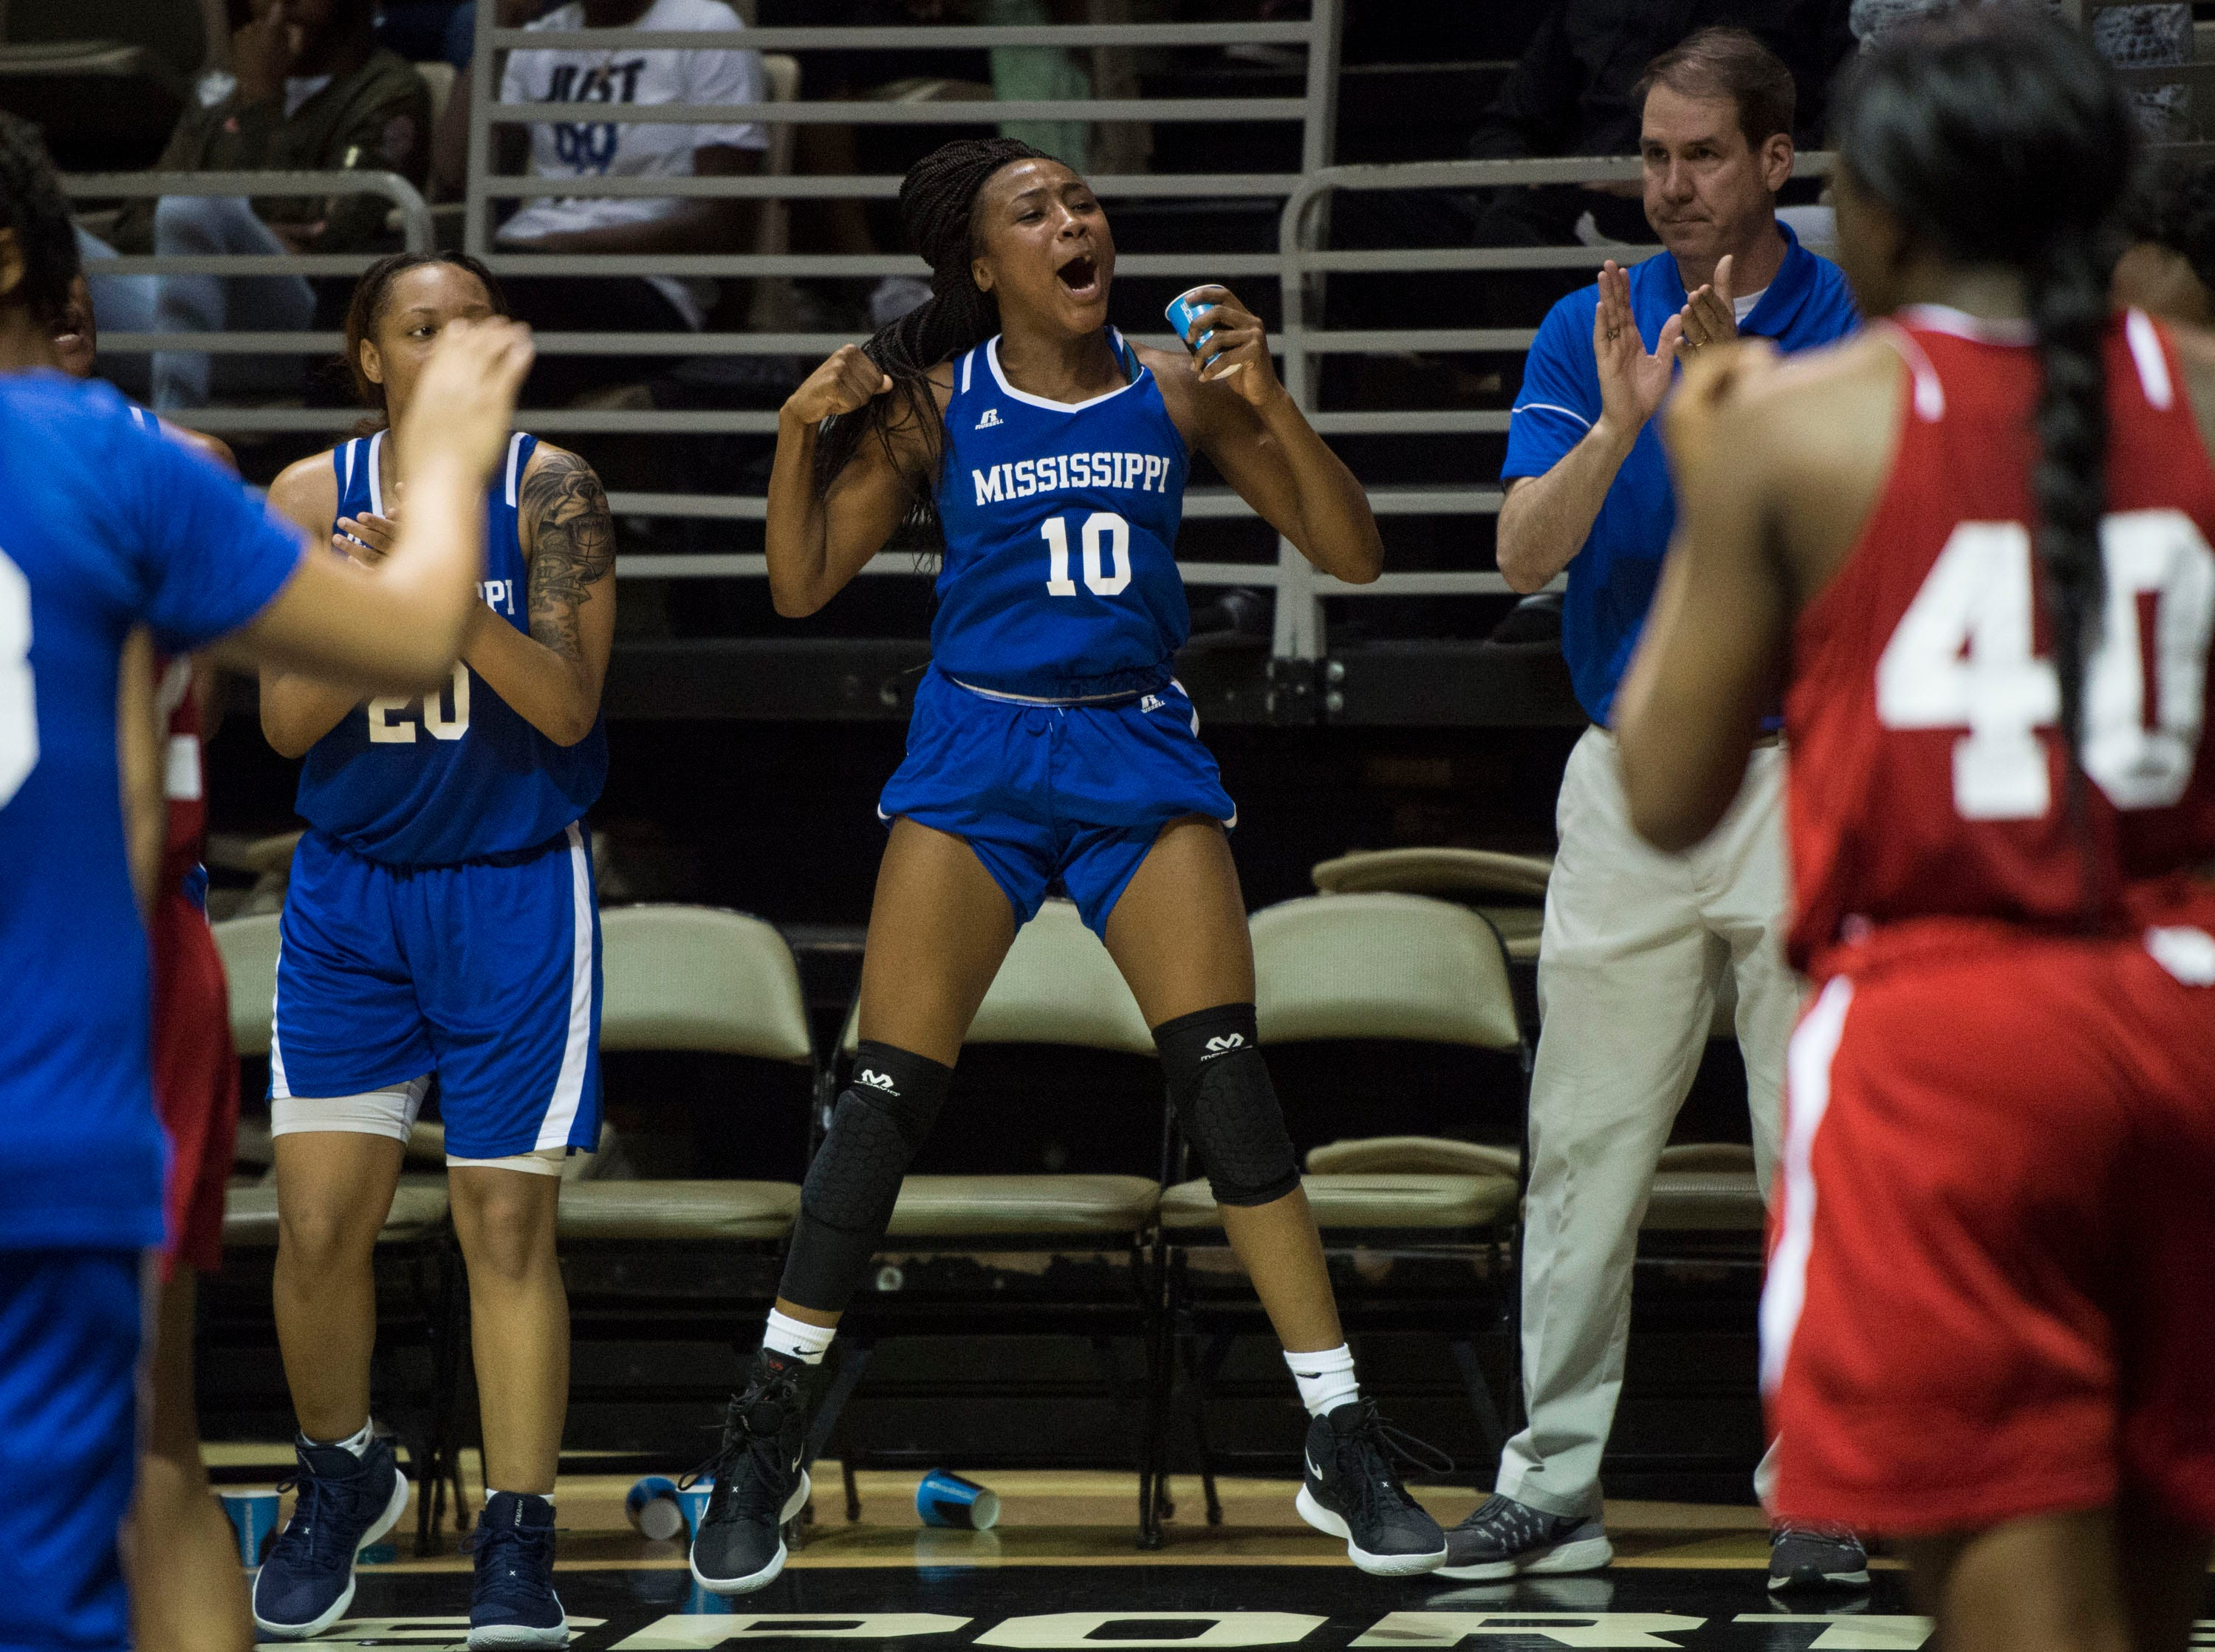 Mississippi's Hannah White (10) reacts from the bench during the Alabama-Mississippi All-Star game at the Dunn-Oliver Acadome in Montgomery, Ala., on Friday, March 15, 2019. Alabama All-stars defeated the Mississippi All-stars 101-82.